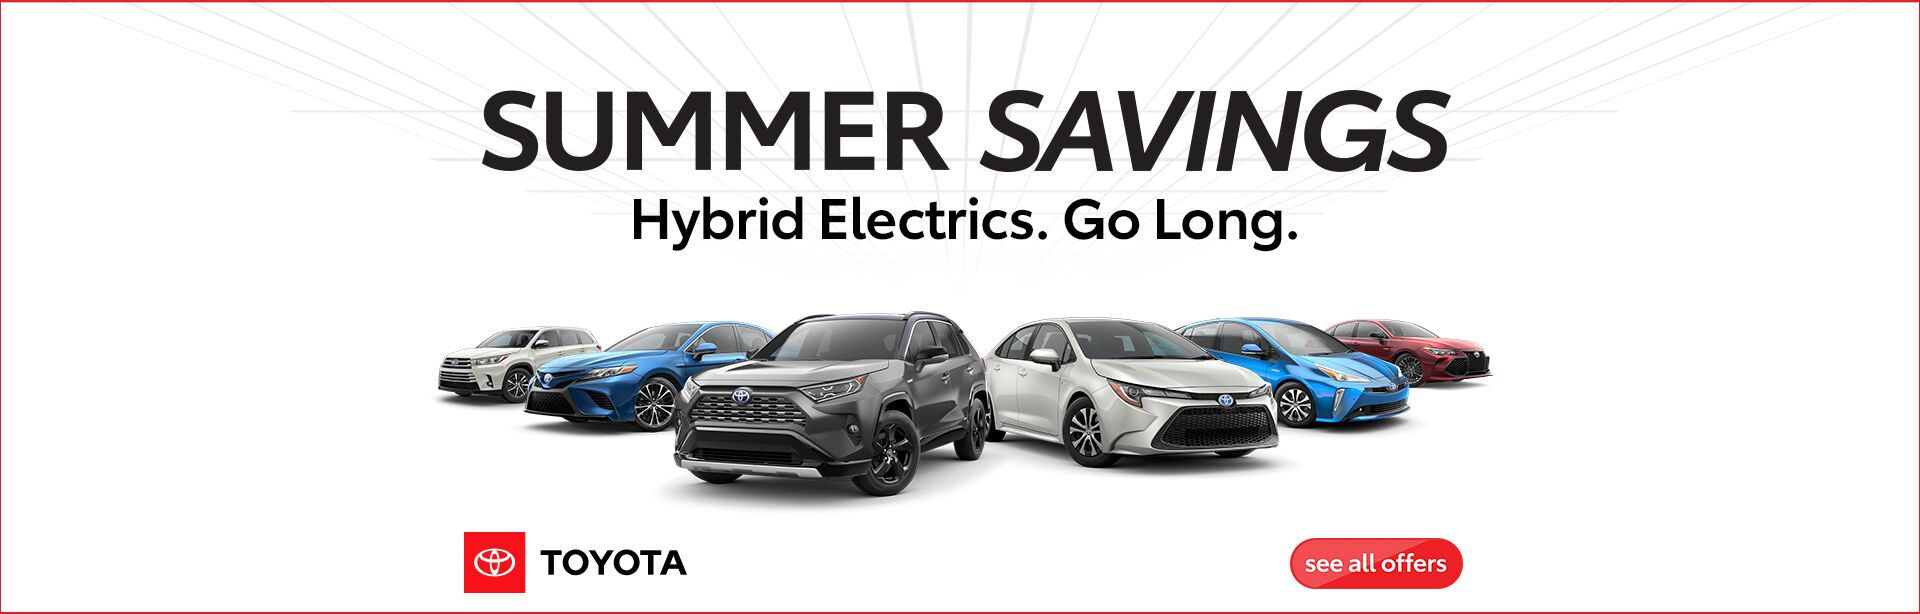 2019 June LA Summer Savings Hybrids